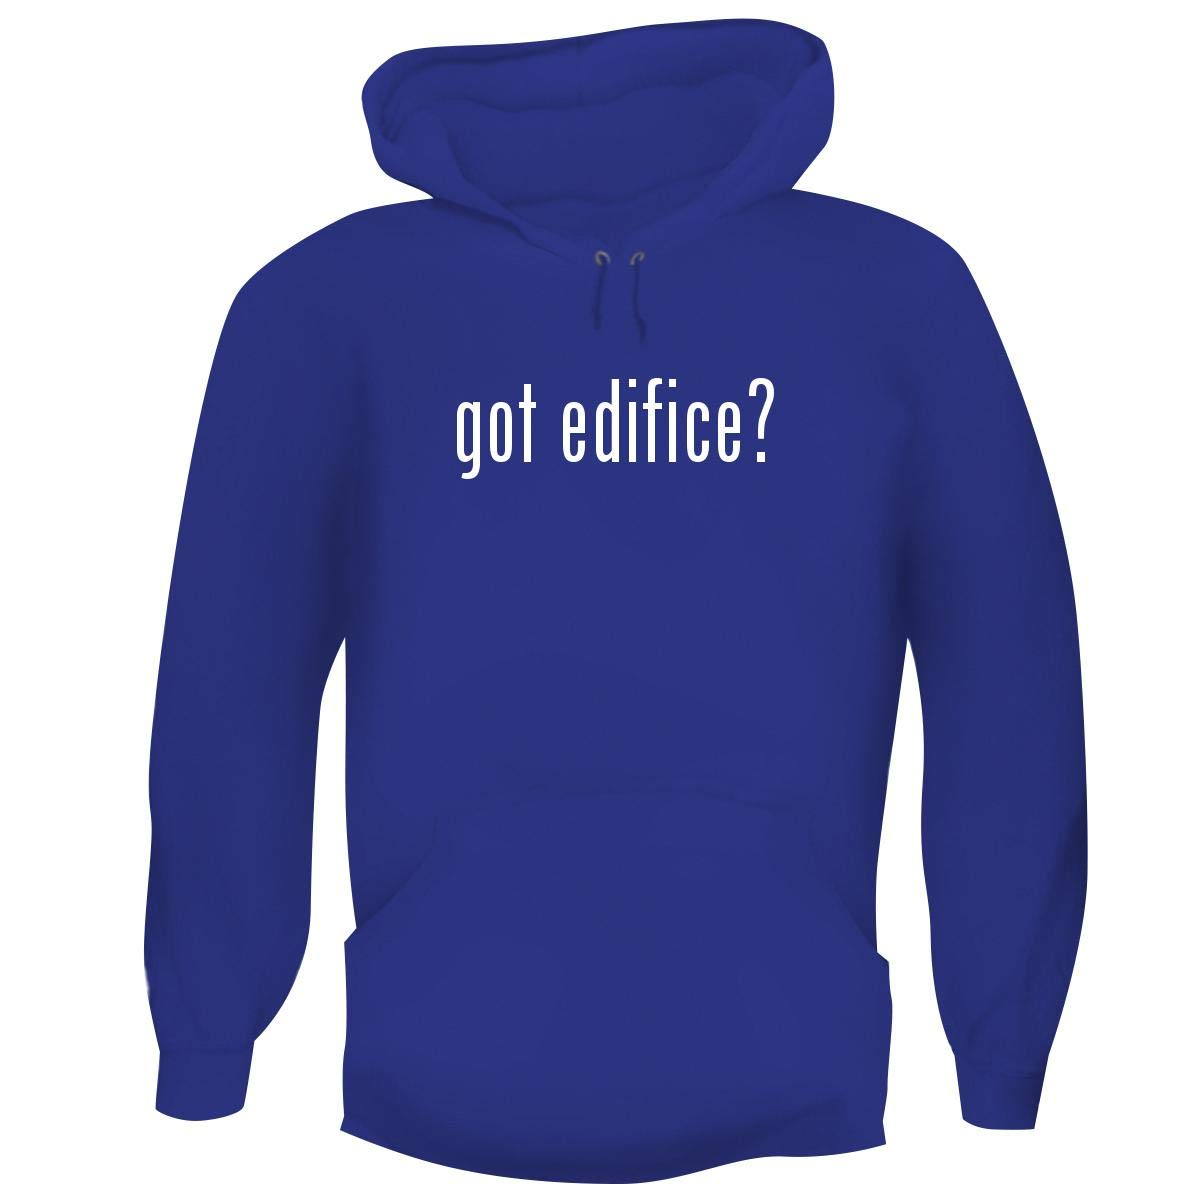 One Legging it Around got Edifice? - Men's Funny Soft Adult Hoodie Pullover, Blue, Medium